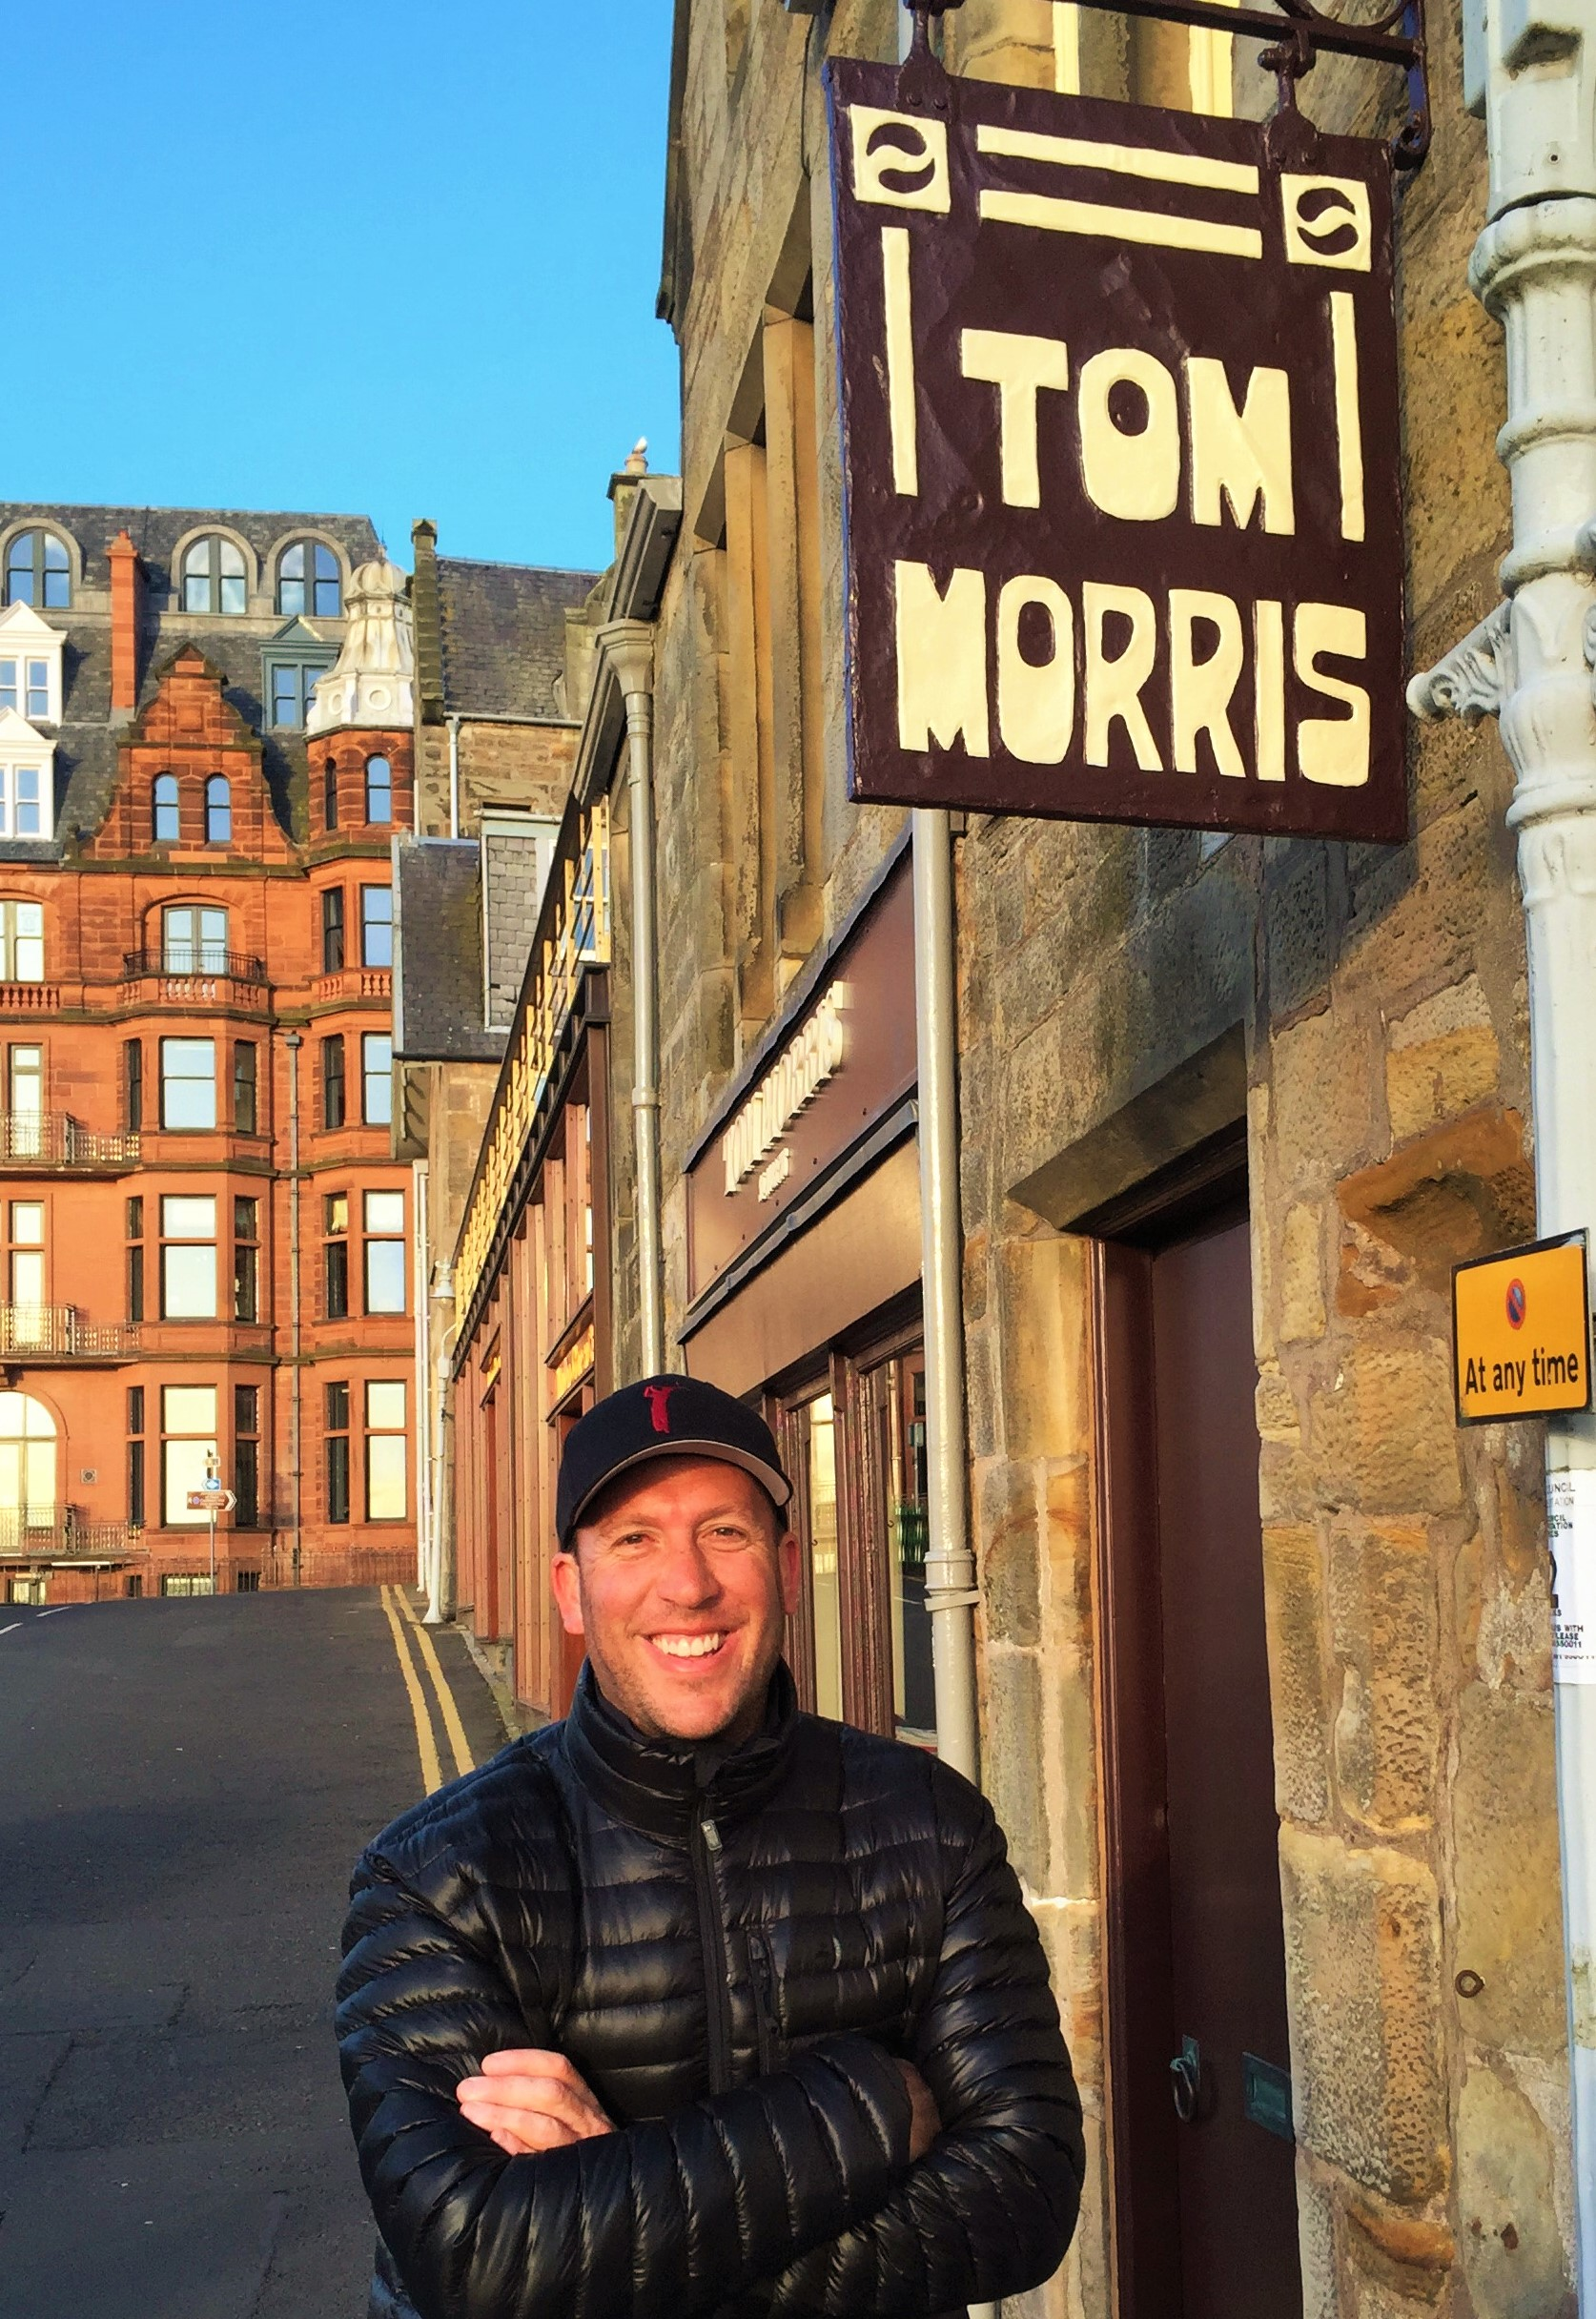 """18th Hole St. Andrews Old Course """"Old Tom Morris"""" Golf Shop-Scotland, 2015"""